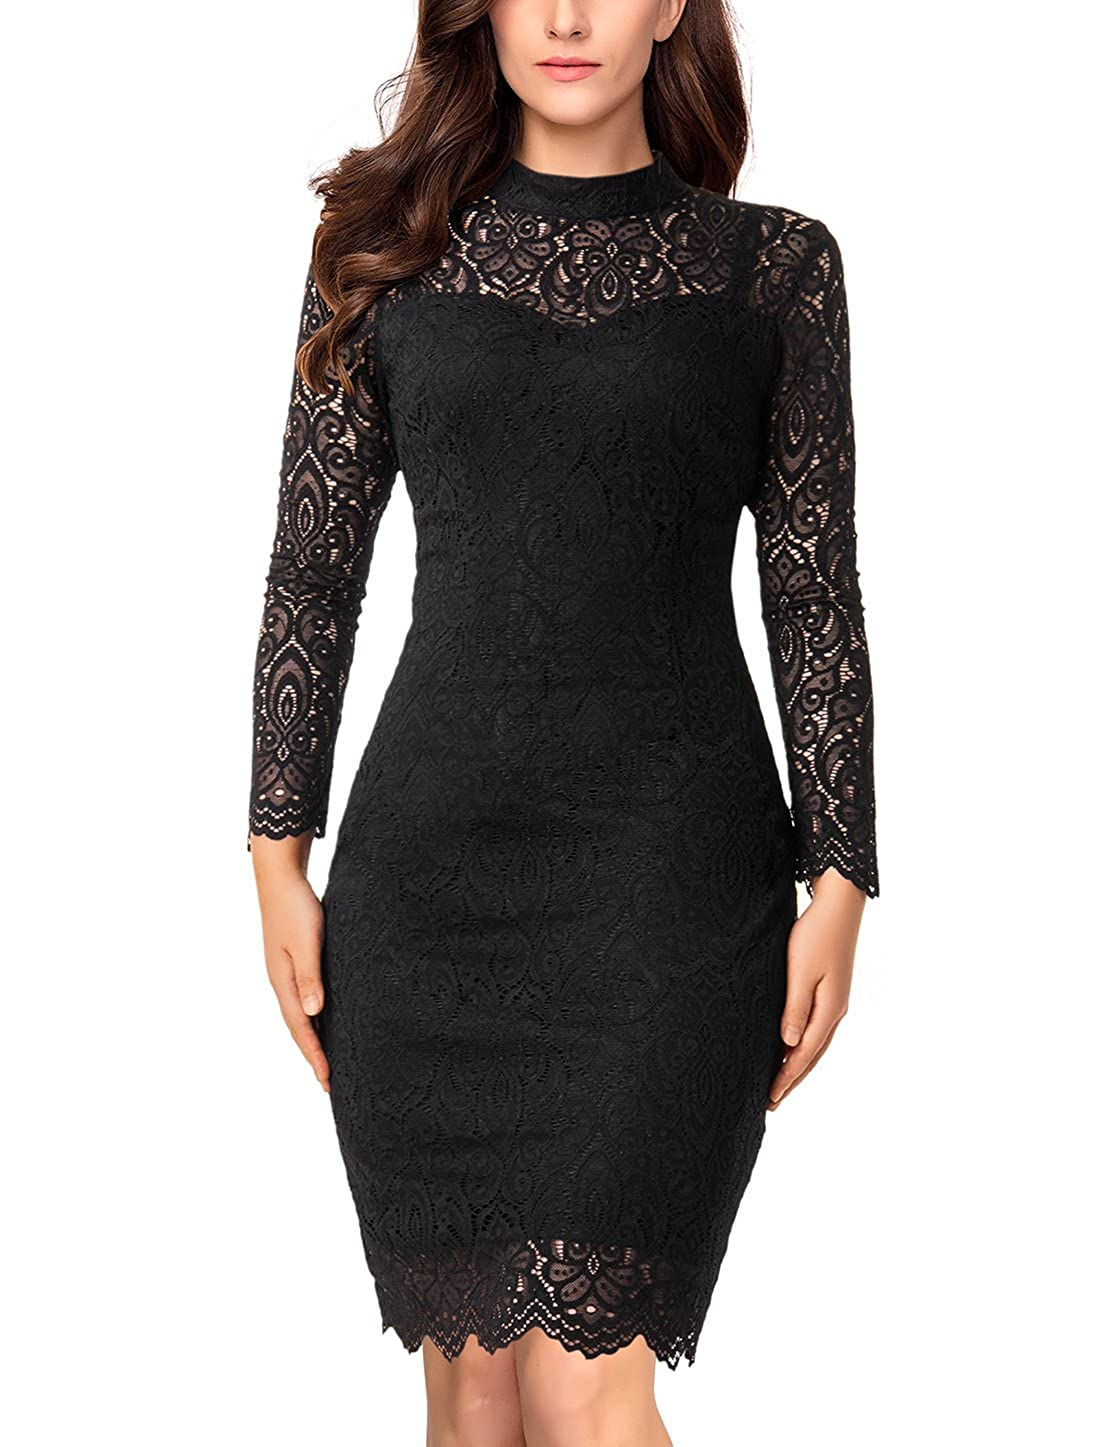 5f750698ac Long Sleeve Lace Bodycon Scalloped Knee Length Cocktail Party Dress for  Women at Amazon Women s Clothing store